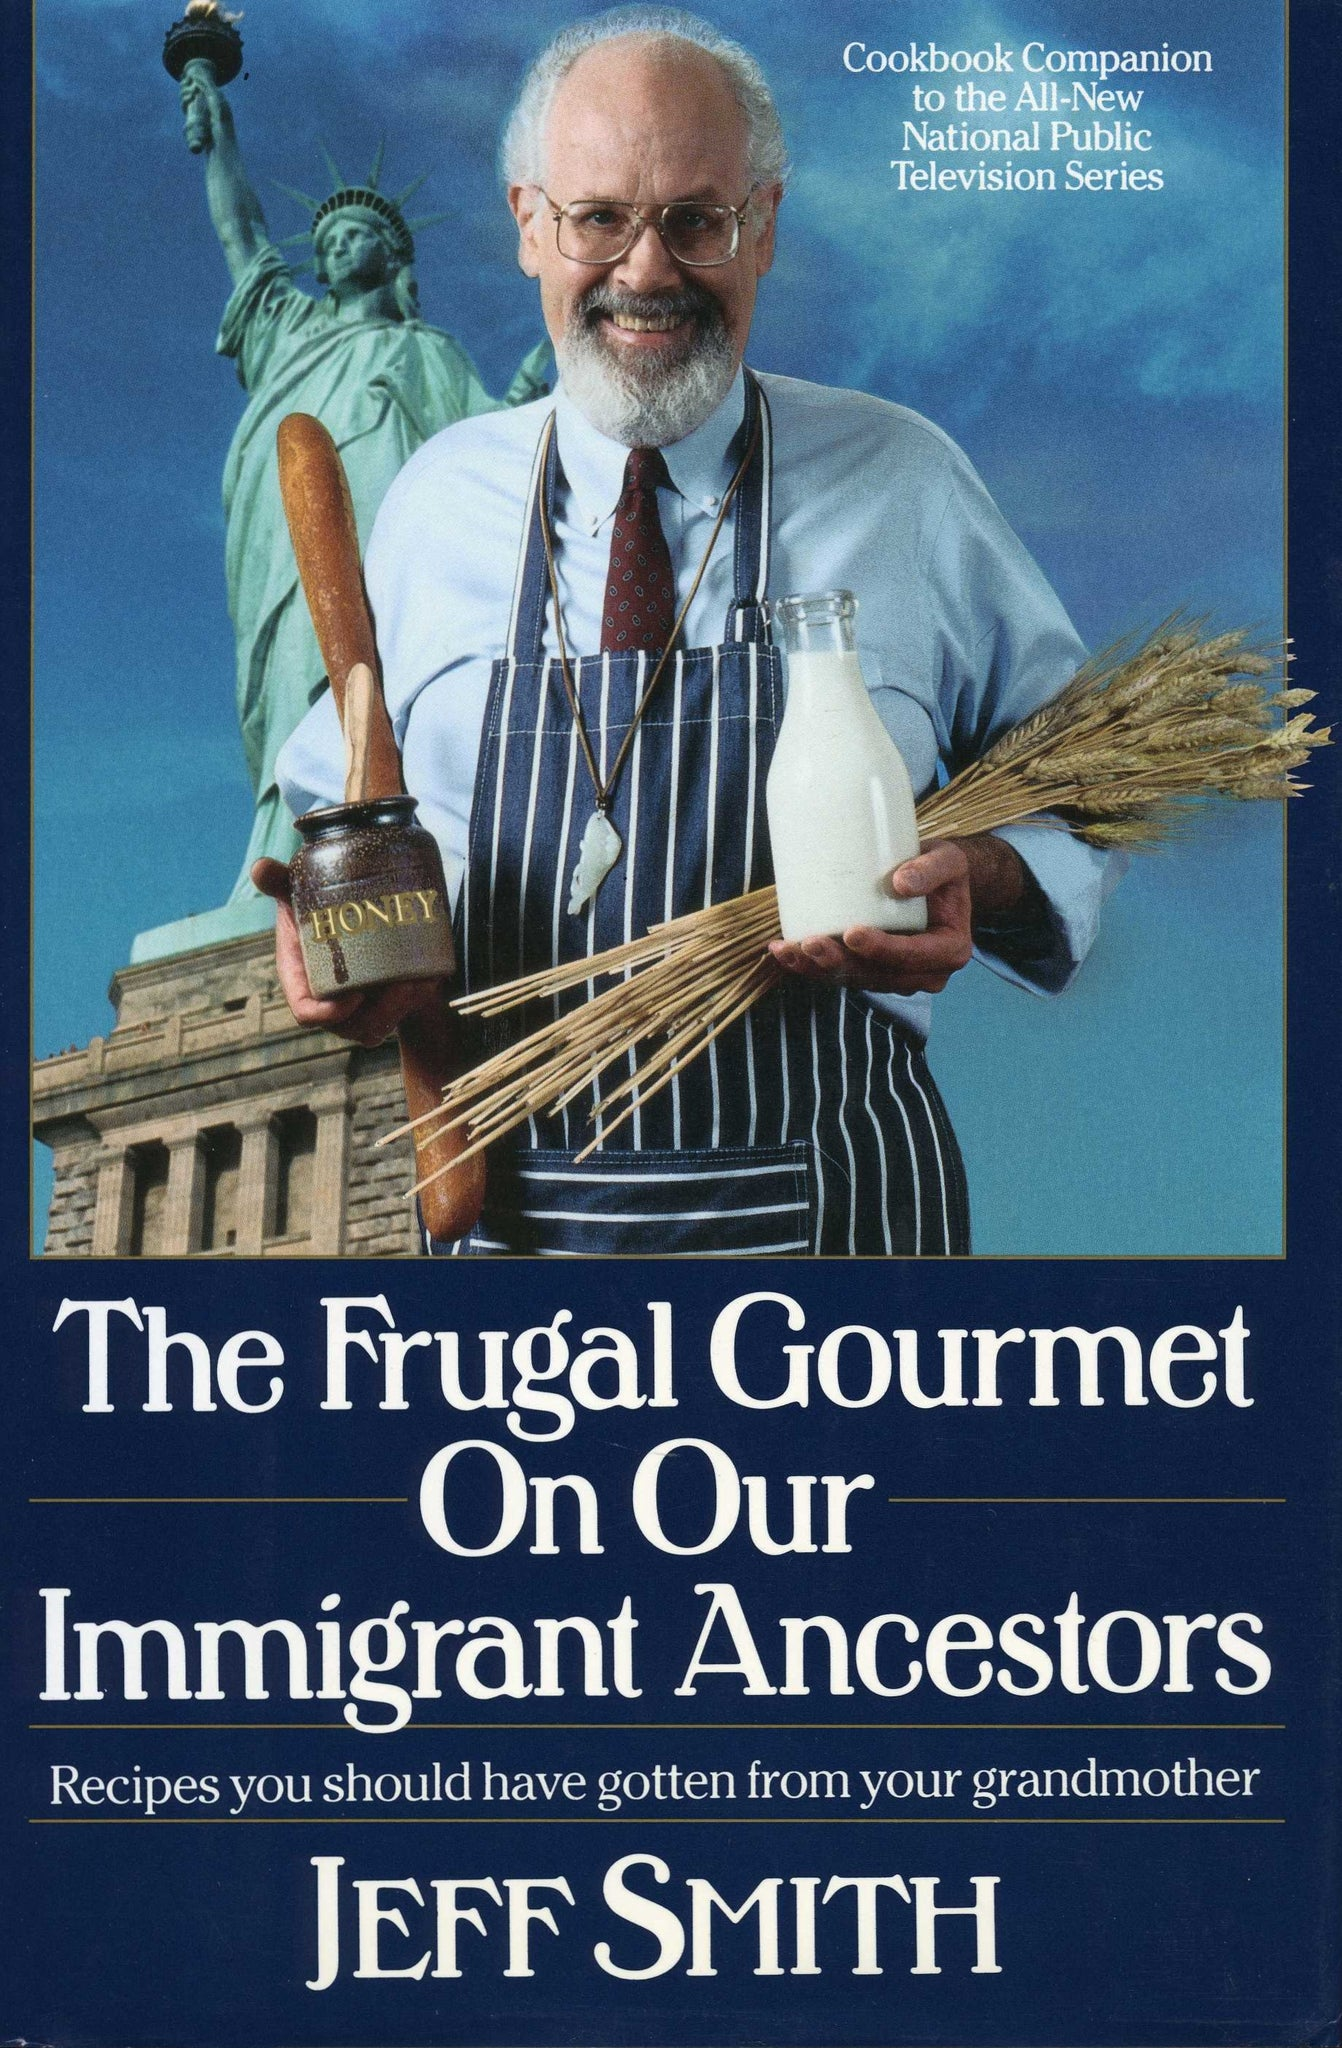 FRUGAL GOURMET ON OUR IMMIGRANT ANCESTORS: Recipes You Should Have Gotten from Your Grandmother